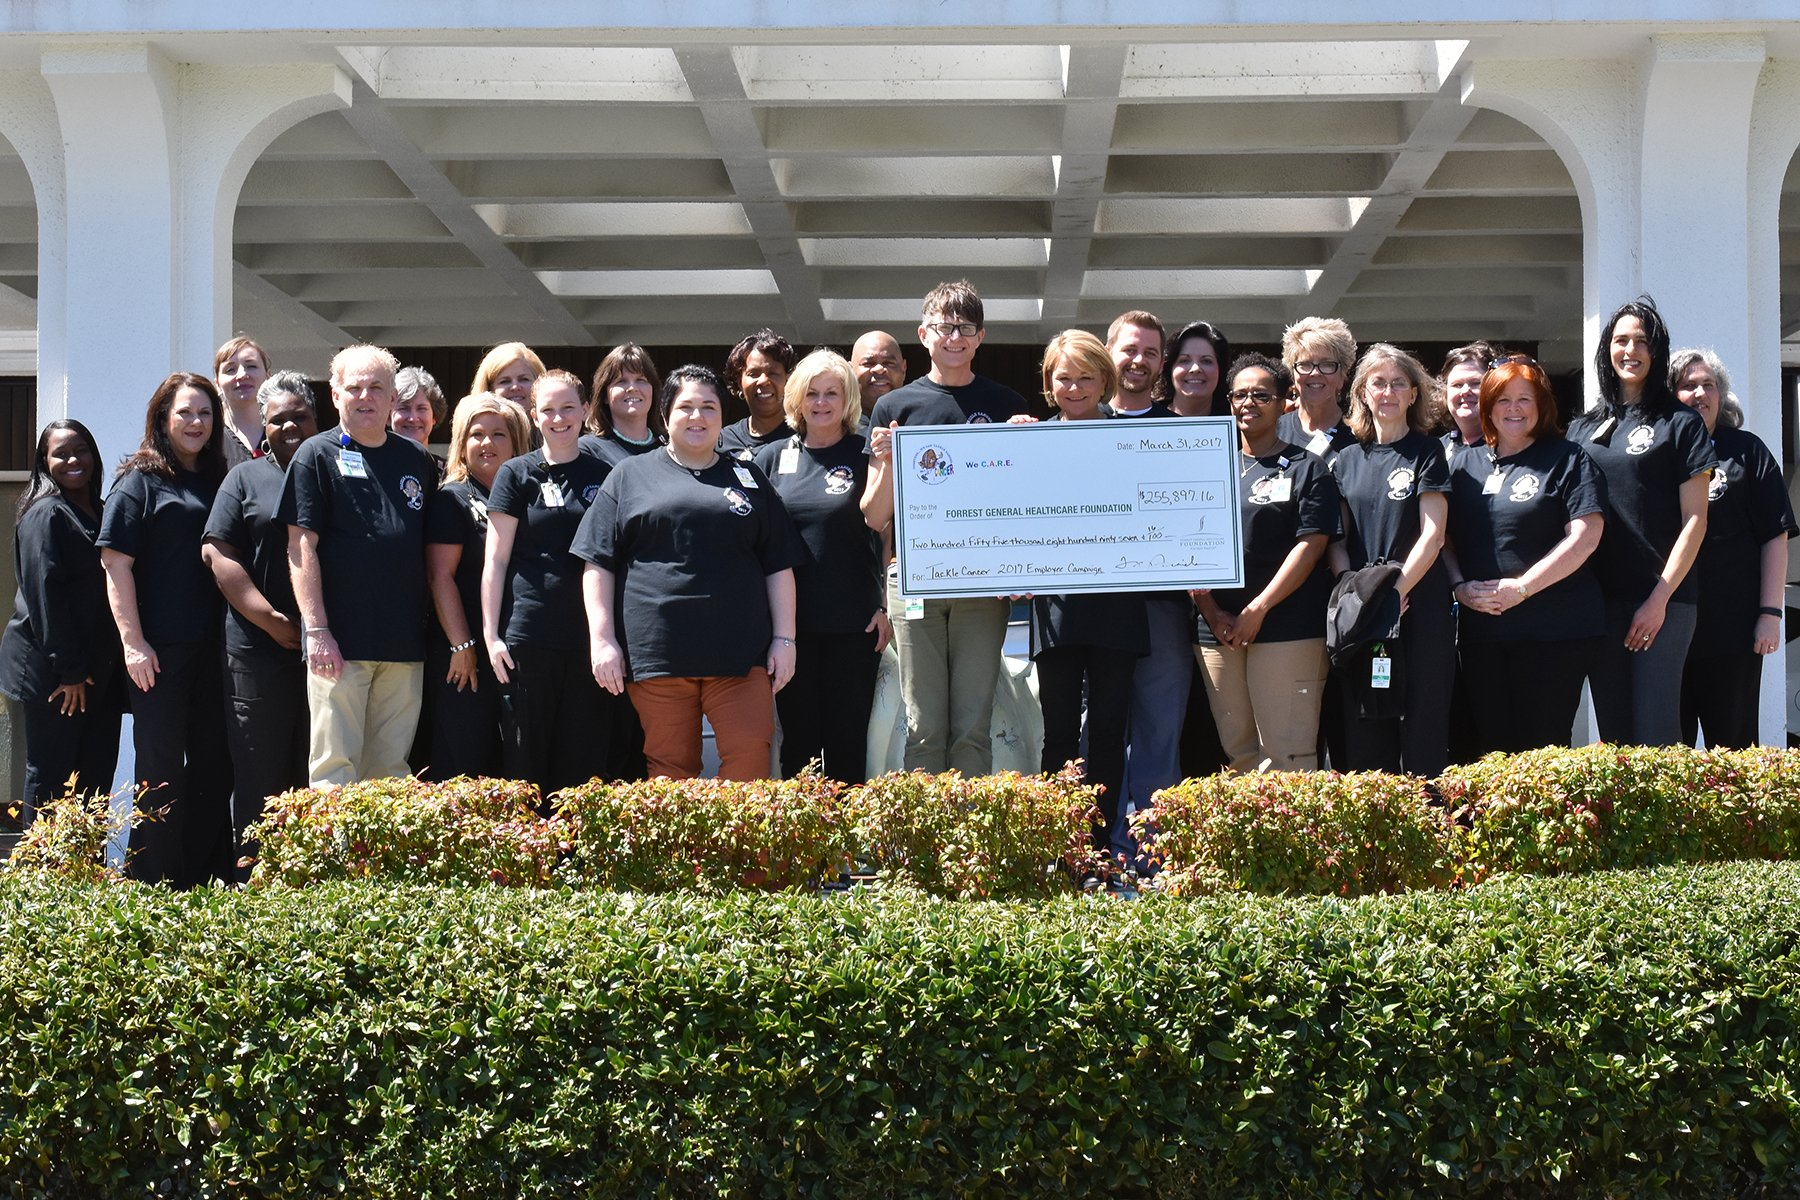 Forrest General Hospital Employees Donate Over 200 000 For Cancer